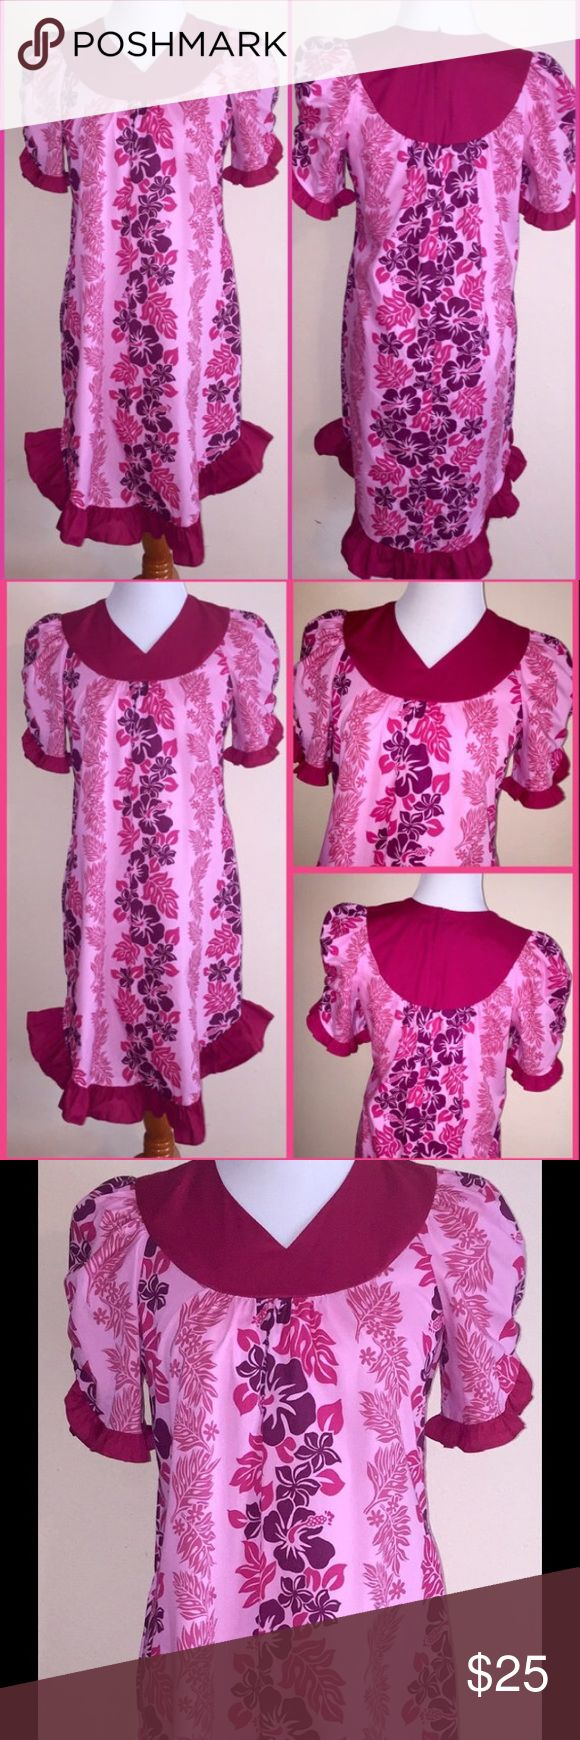 Vintage CAROL BENNETT Pink Floral Hawaiian Dress S Vintage CAROL BENNETT Pink Hibiscus Floral Print Ruffle Puff Sleeve Hawaiian Aloha Party Dress sz S Small. There are no material or size tags in the dress. My guess is the dress is made of 100% Cotton and is a size Small. Please see measurements for an accurate fit - Bust - 36 inches Waist - 46 inches Length - 37 inches Thanks for looking. 031117-14 carol bennett Dresses Midi